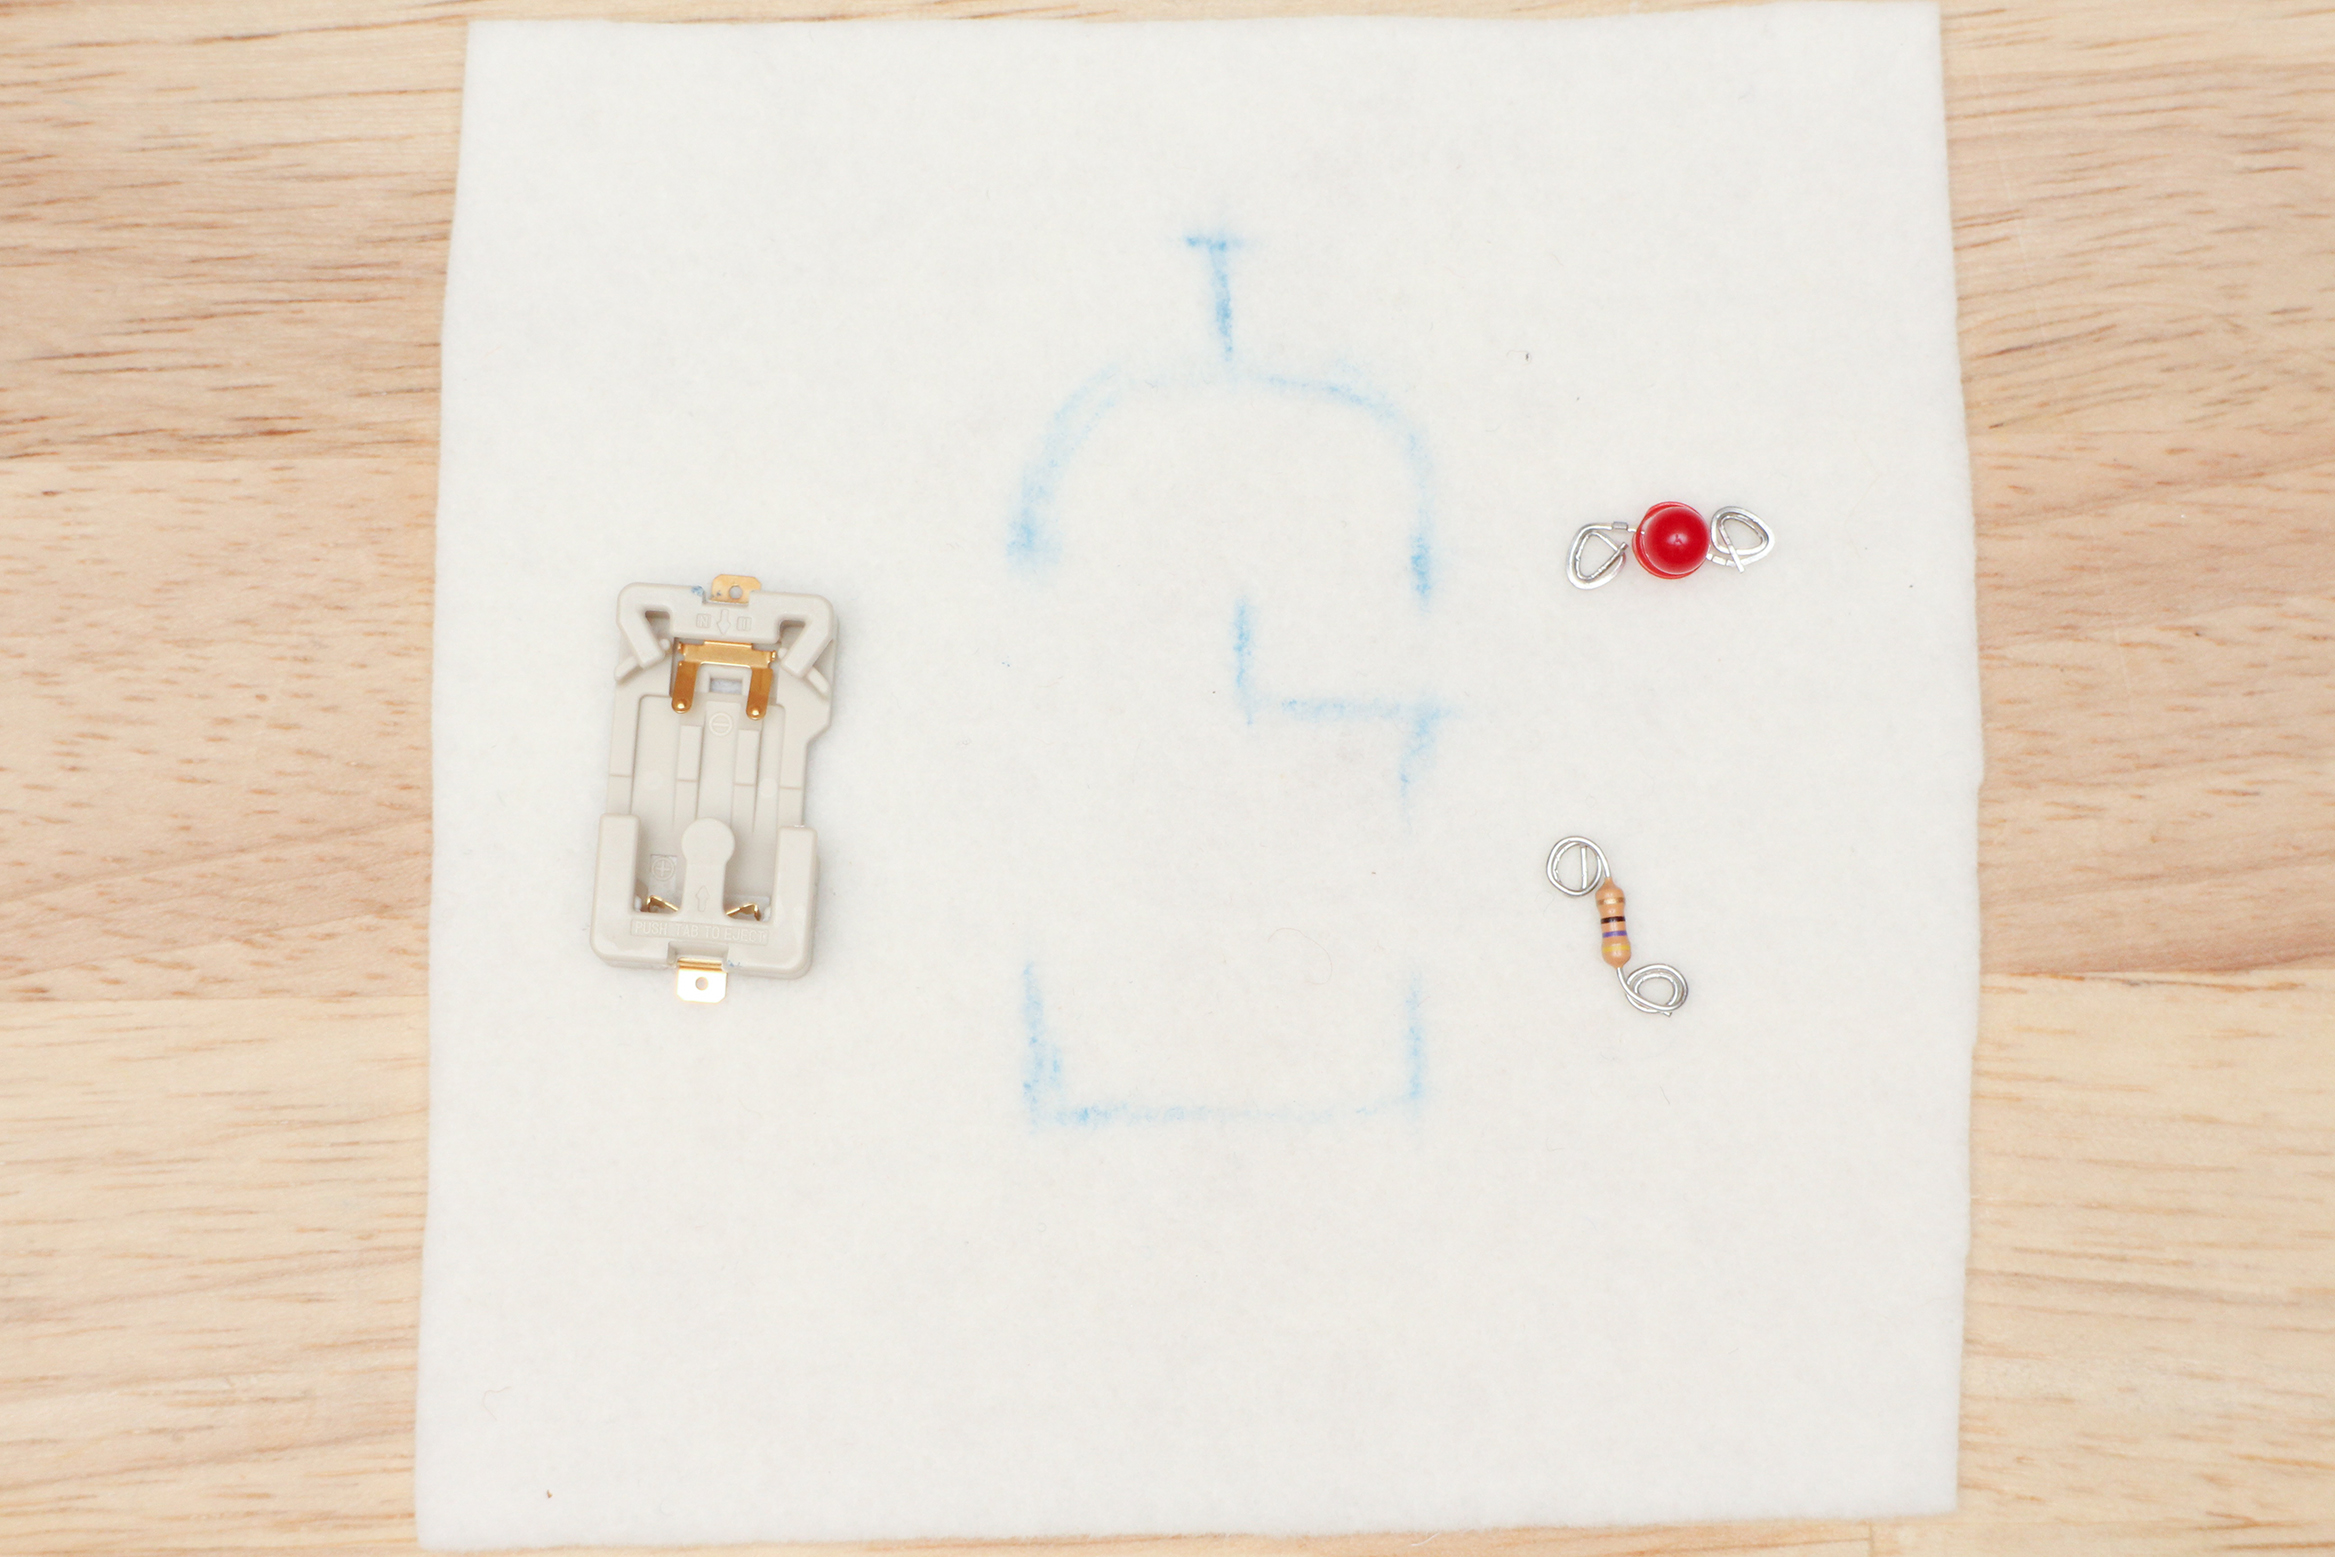 Sew A Circuit Above Short To Ground Leg Of Resistor Battery